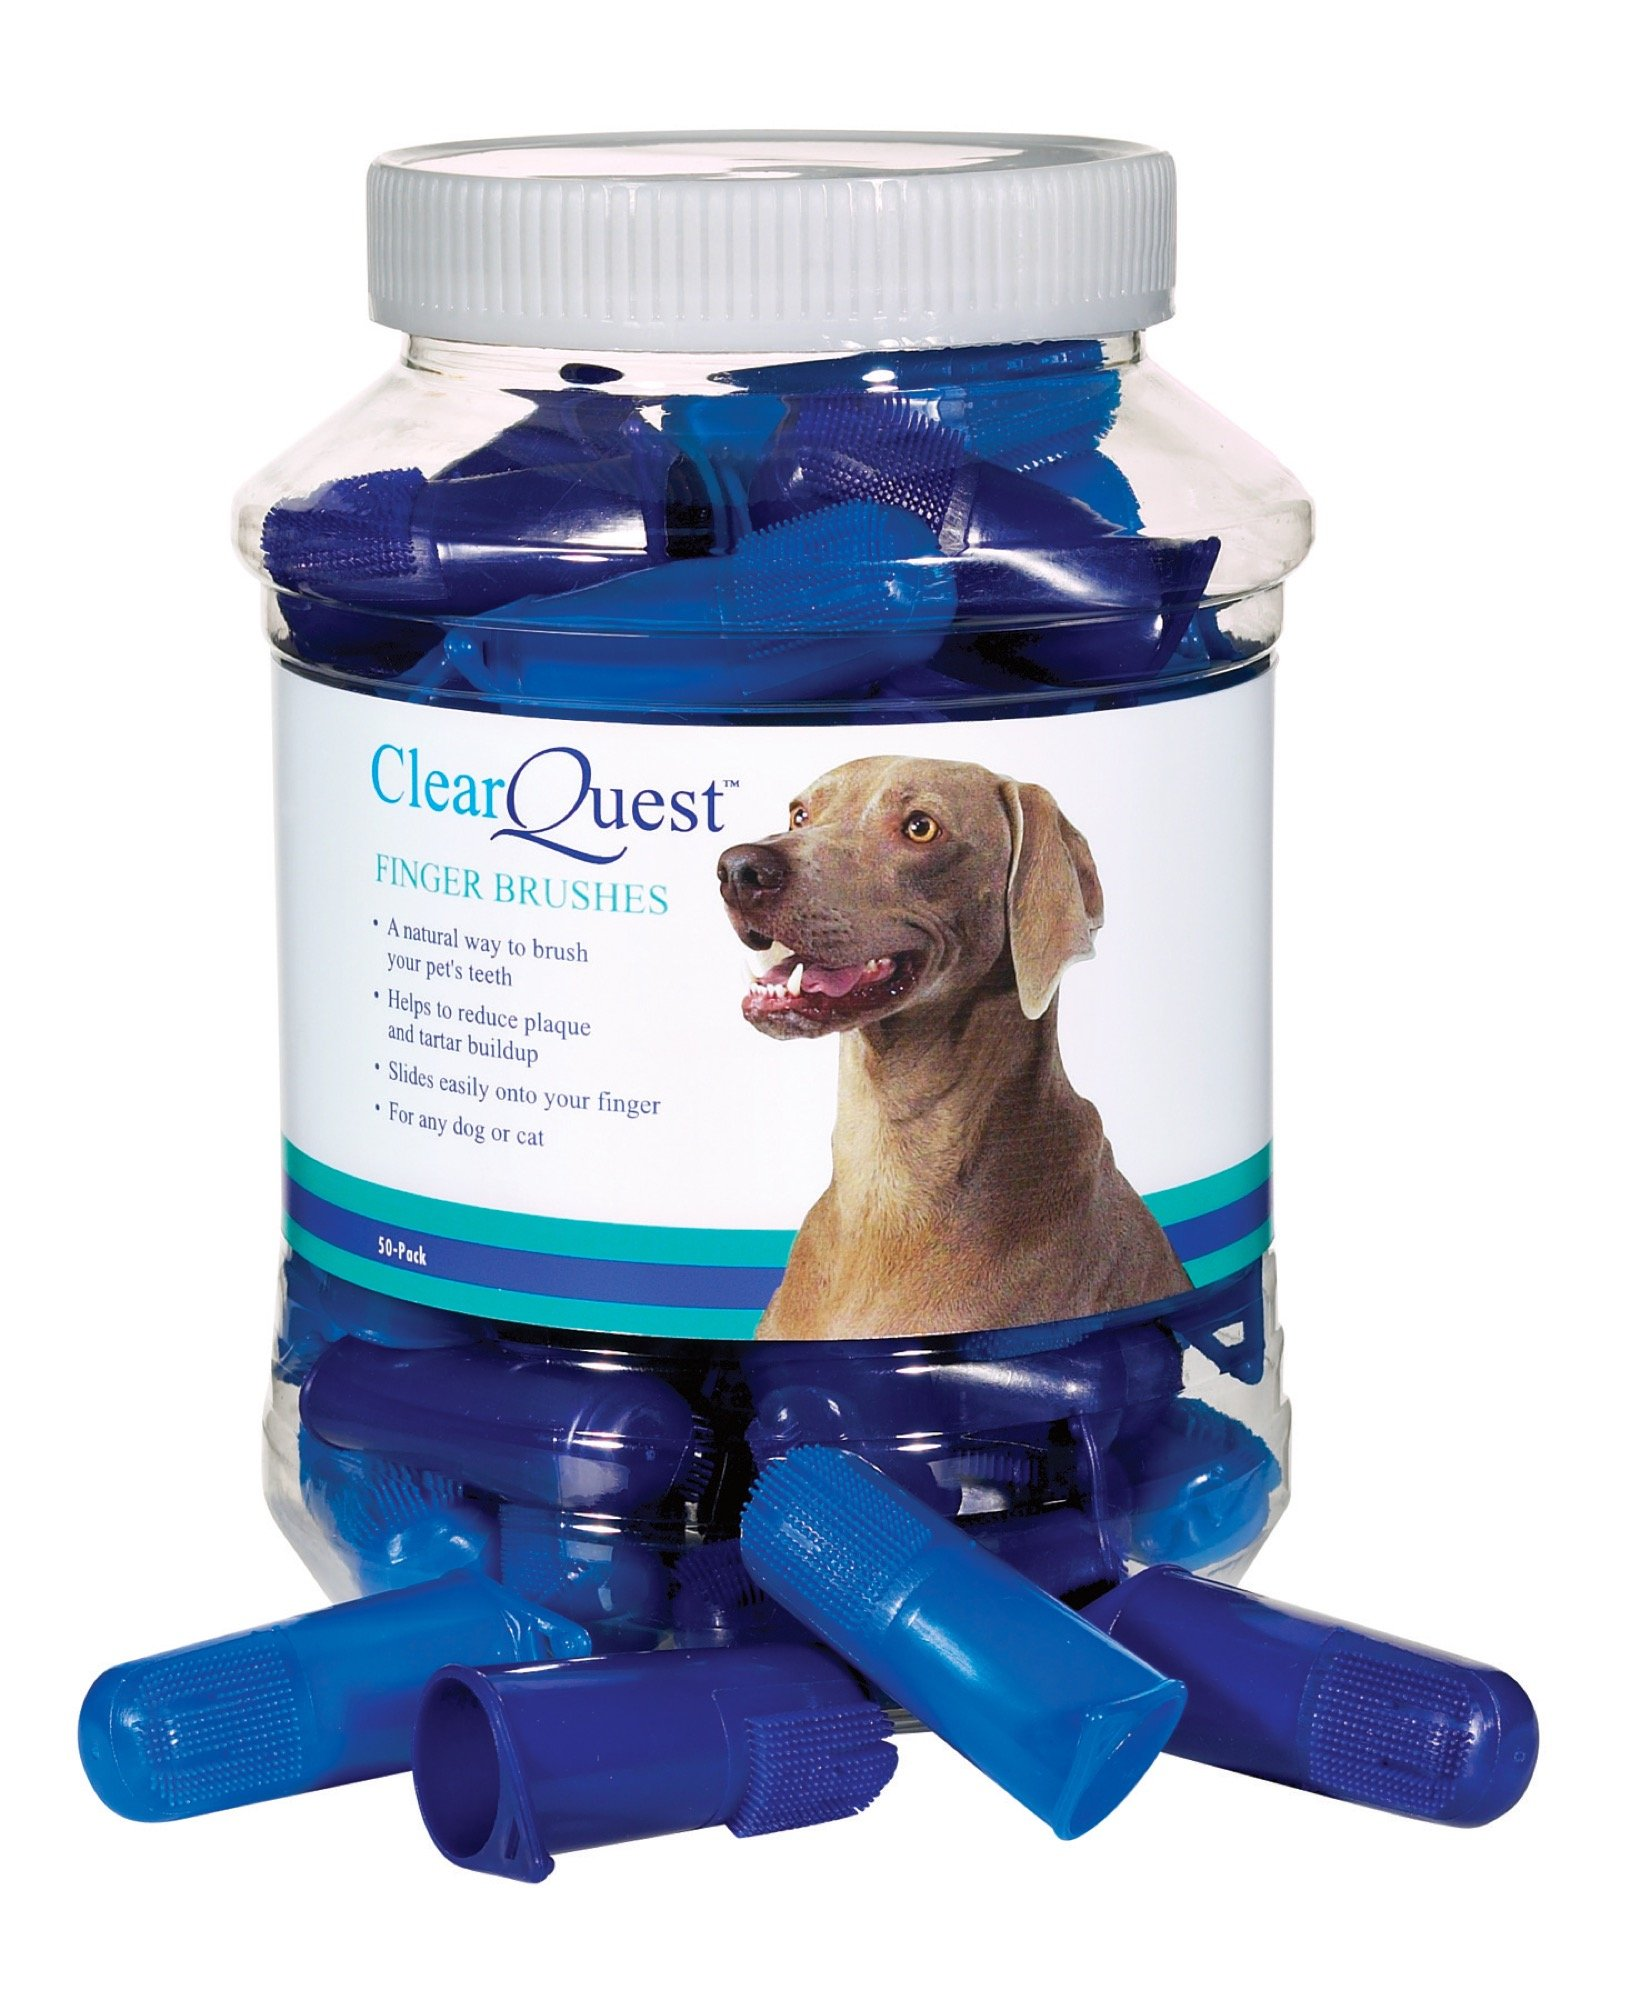 ClearQuest Finger Brush Canisters - Convenient Toothbrushes for Cleaning Pets' Teeth, 50-Pack by ClearQuest